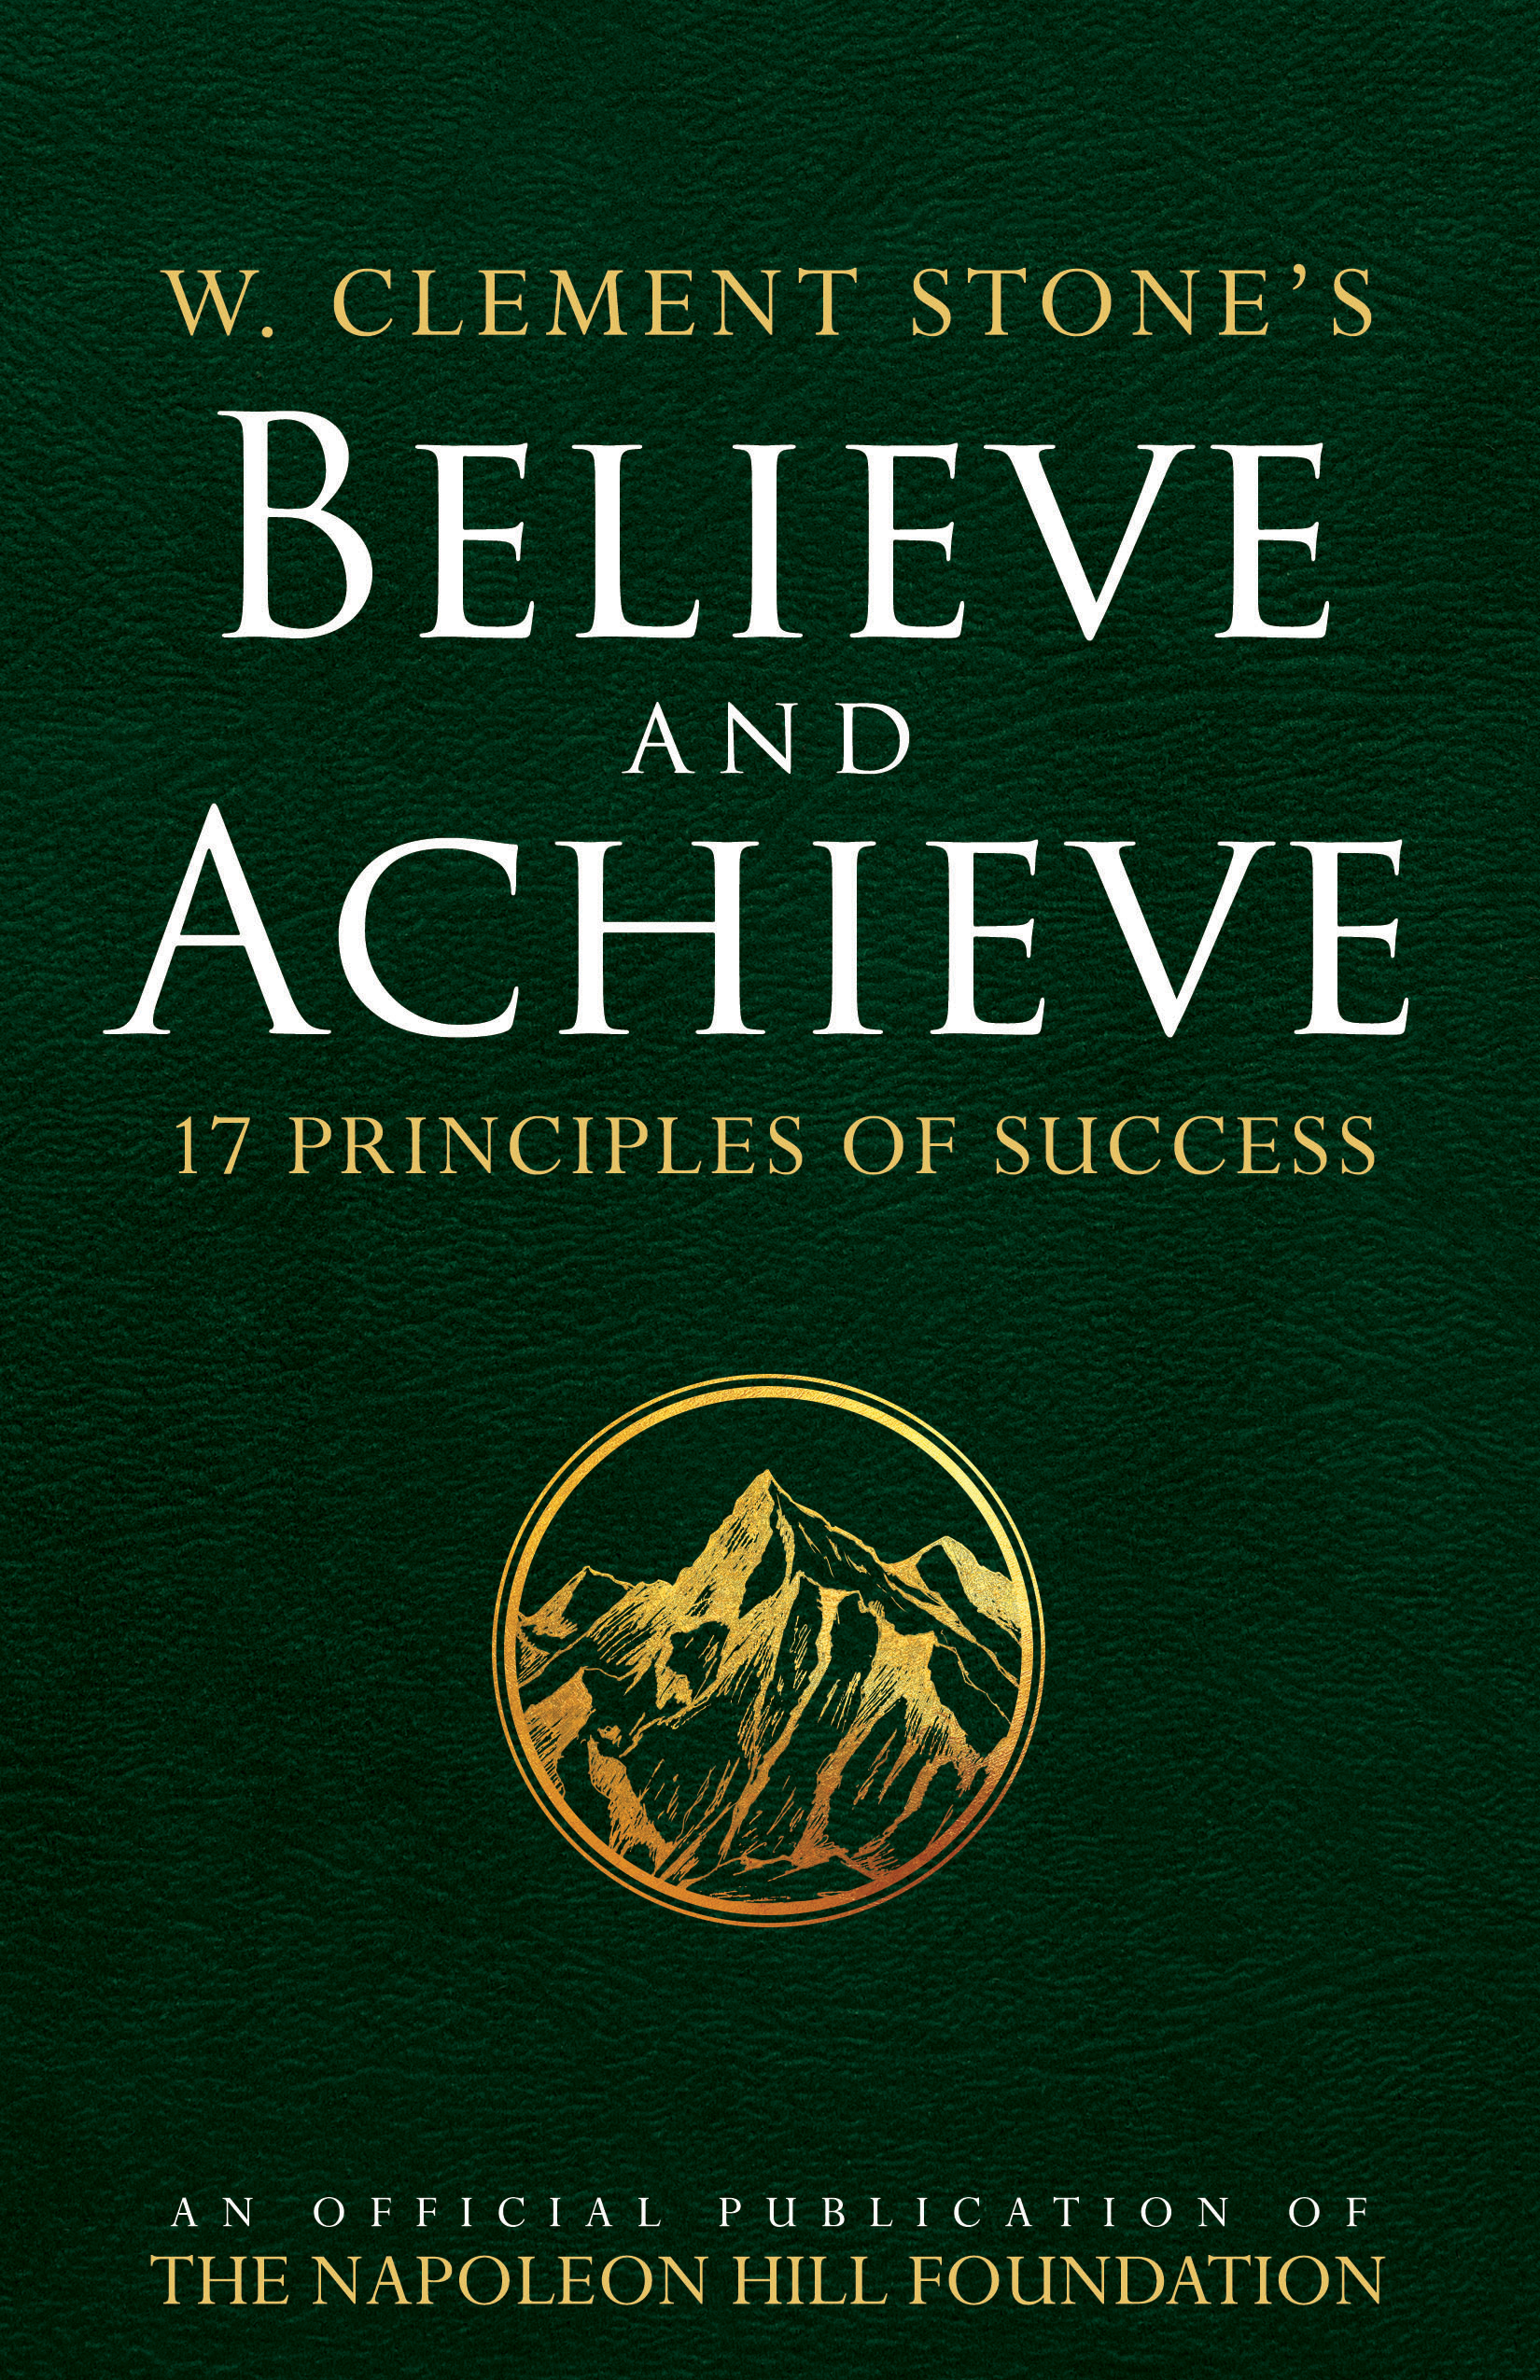 W. Clement Stone's Believe and Achieve - W. Clement Stone